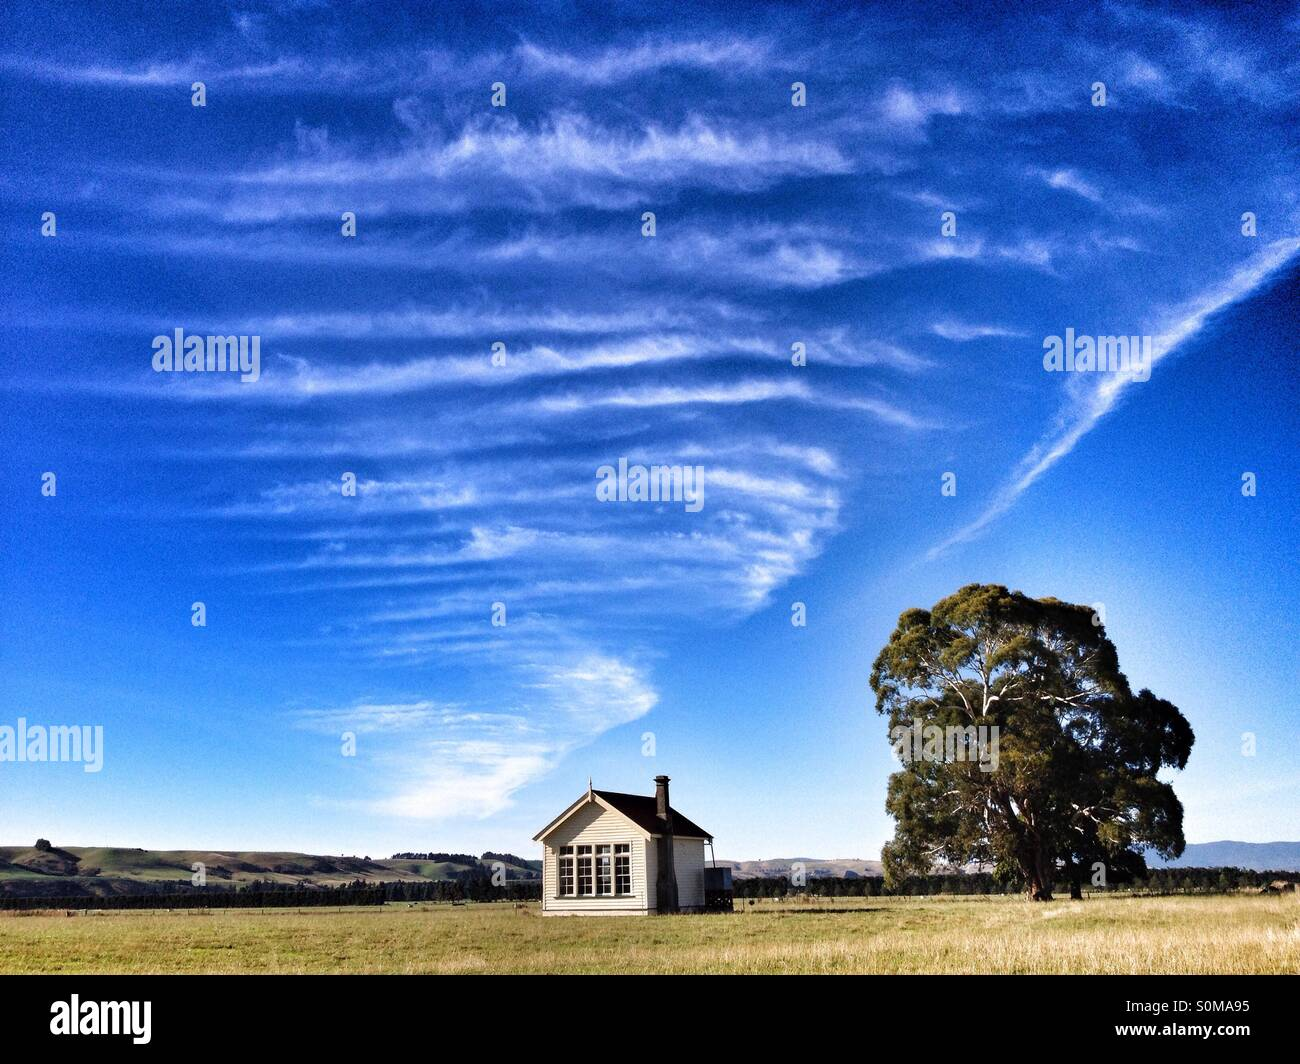 House and a tree, Otahu Flat, South Island of New Zealand Stock Photo